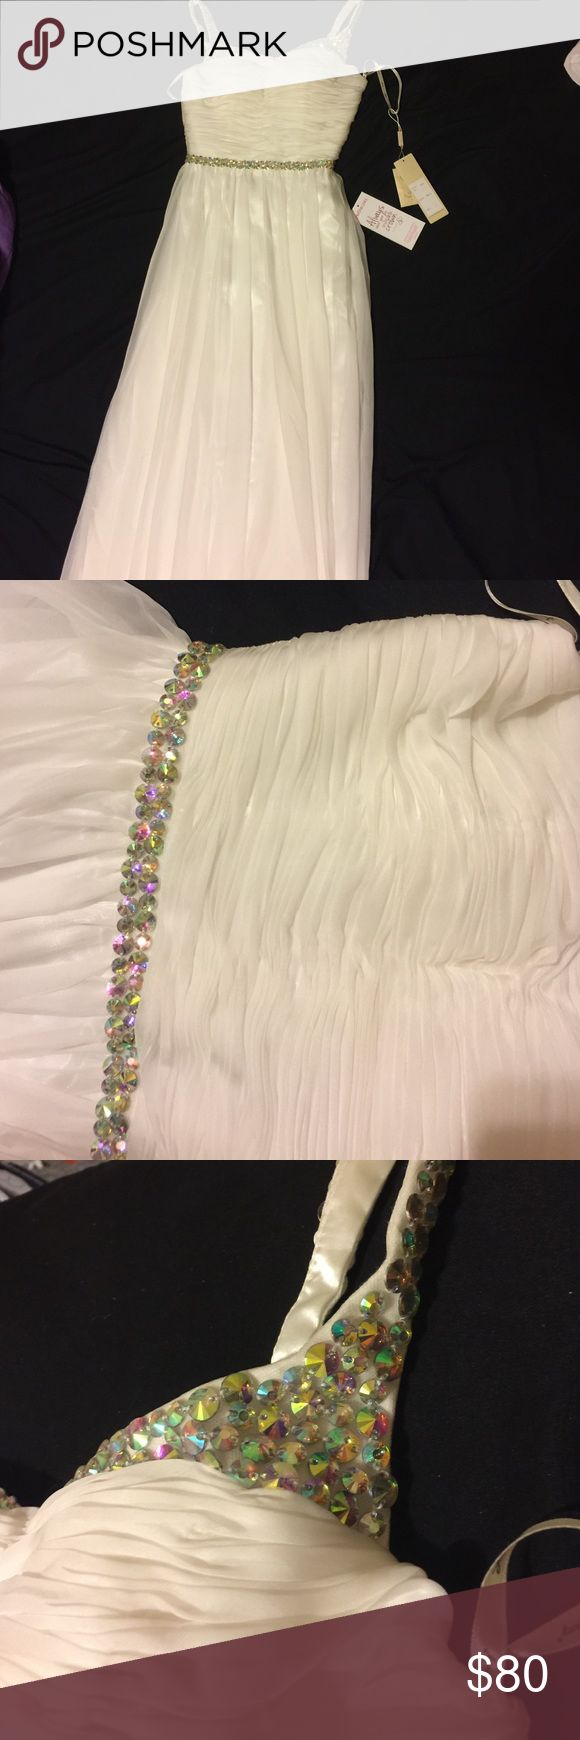 Long white formal dress Beautiful white formal dress with jeweled belt and jeweled straps. Never worn . Brand new Dresses Prom